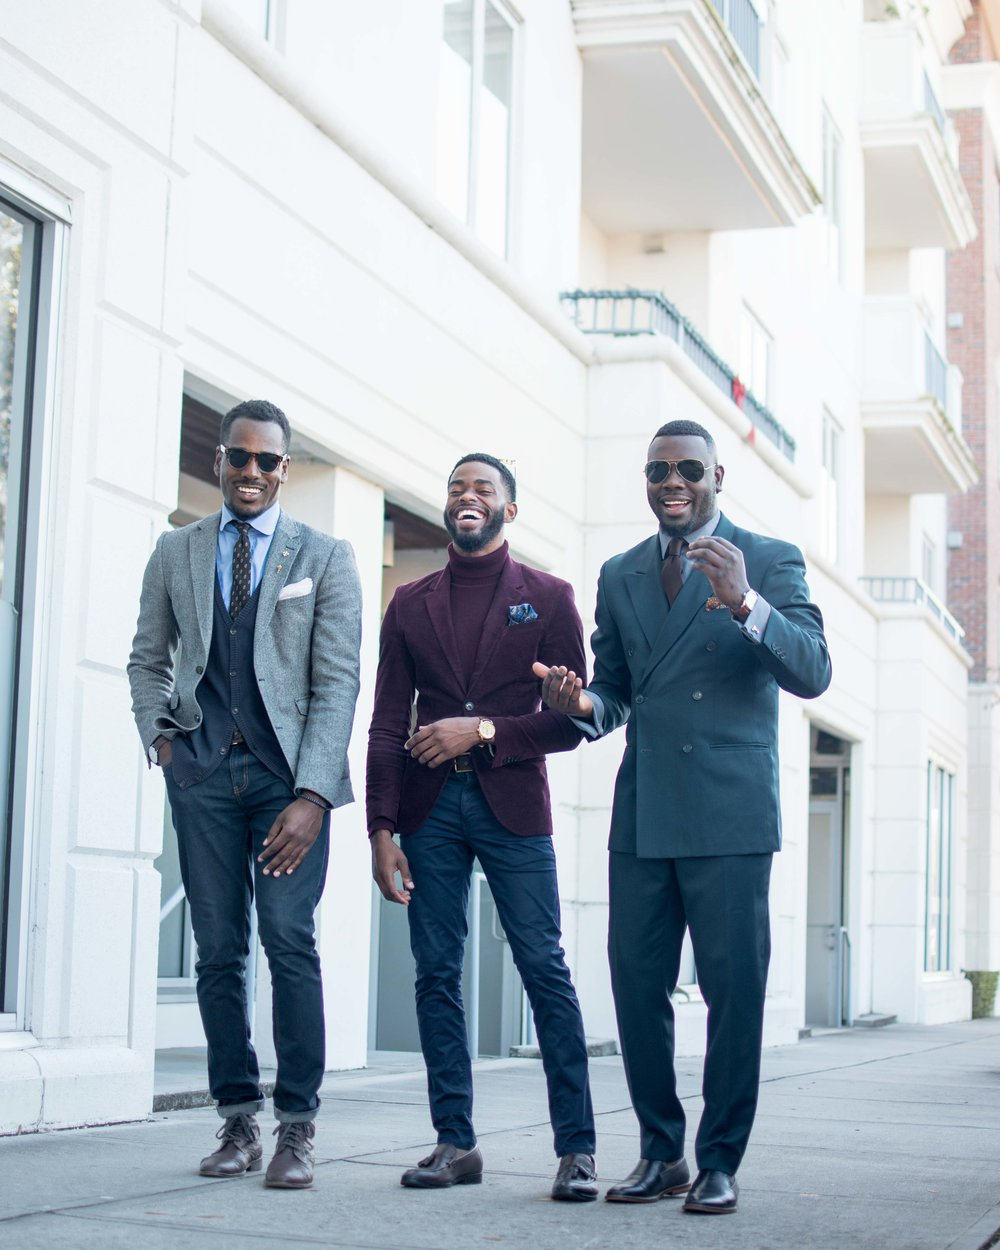 dapper men orlando fashion florida style.jpg